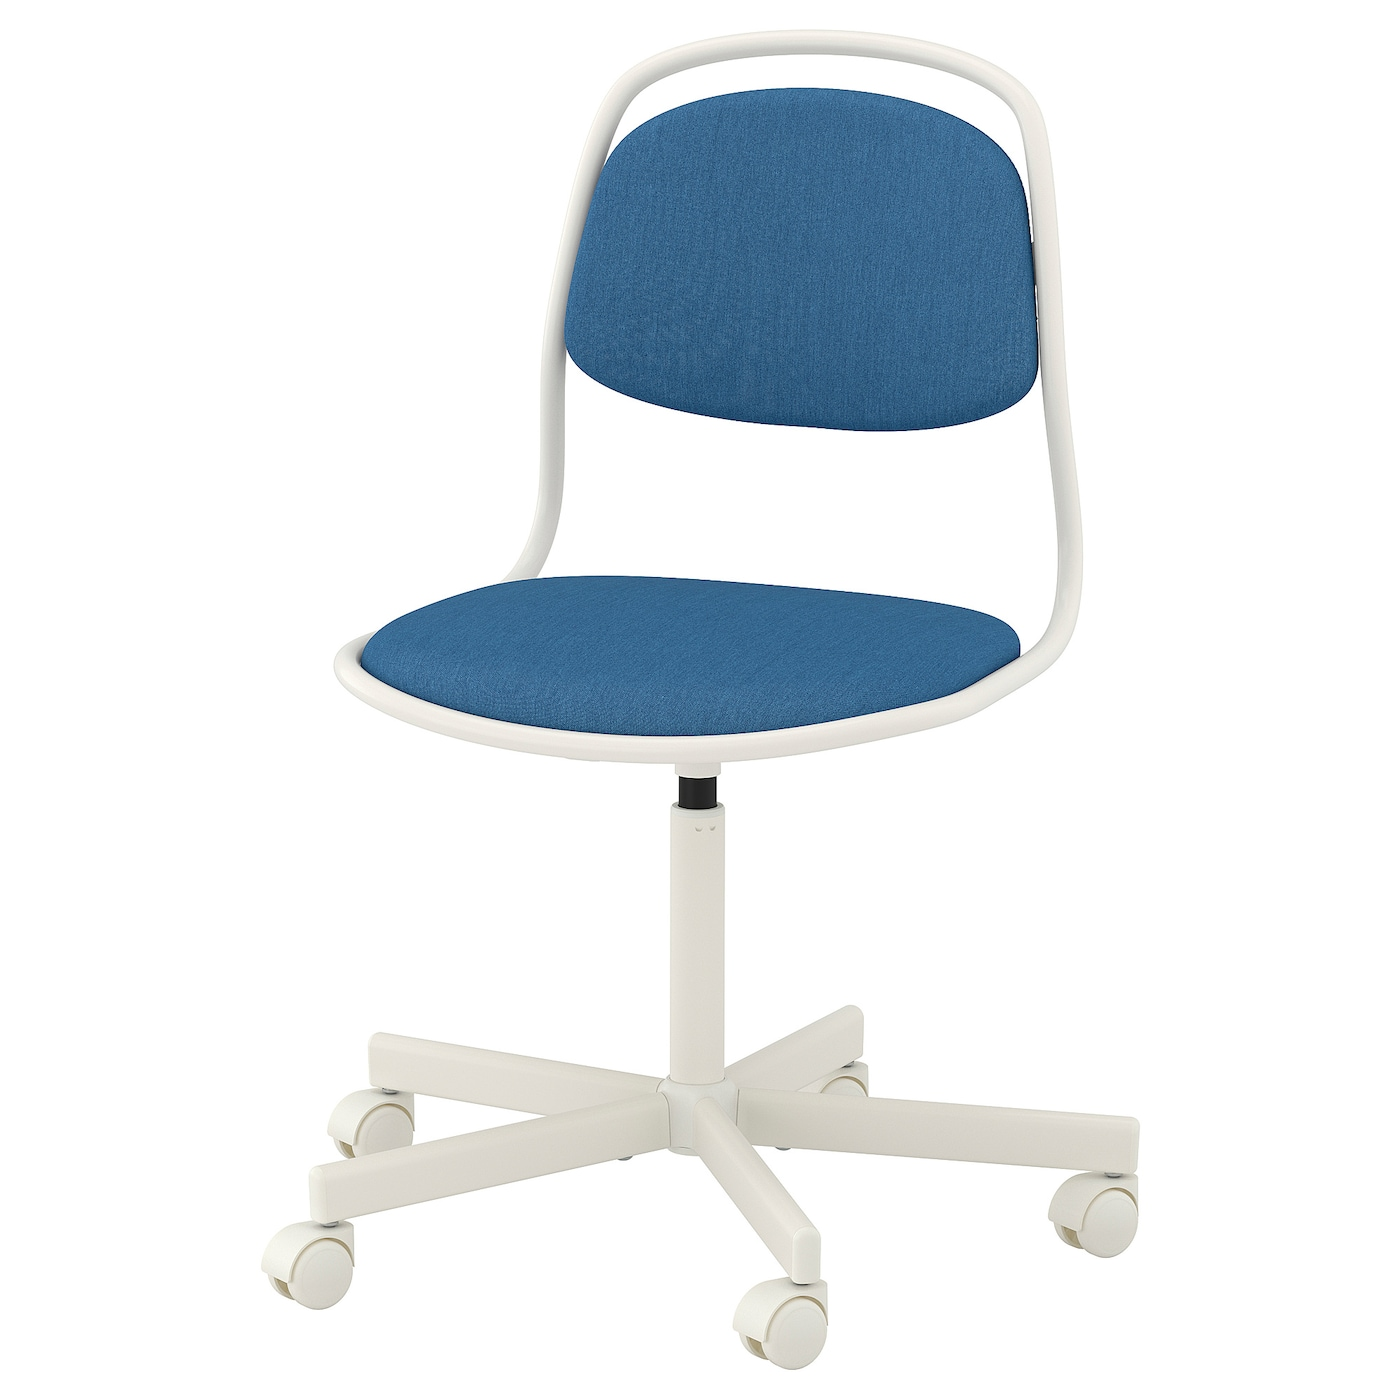 Outstanding Swivel Chair Orfjall White Vissle Blue Unemploymentrelief Wooden Chair Designs For Living Room Unemploymentrelieforg